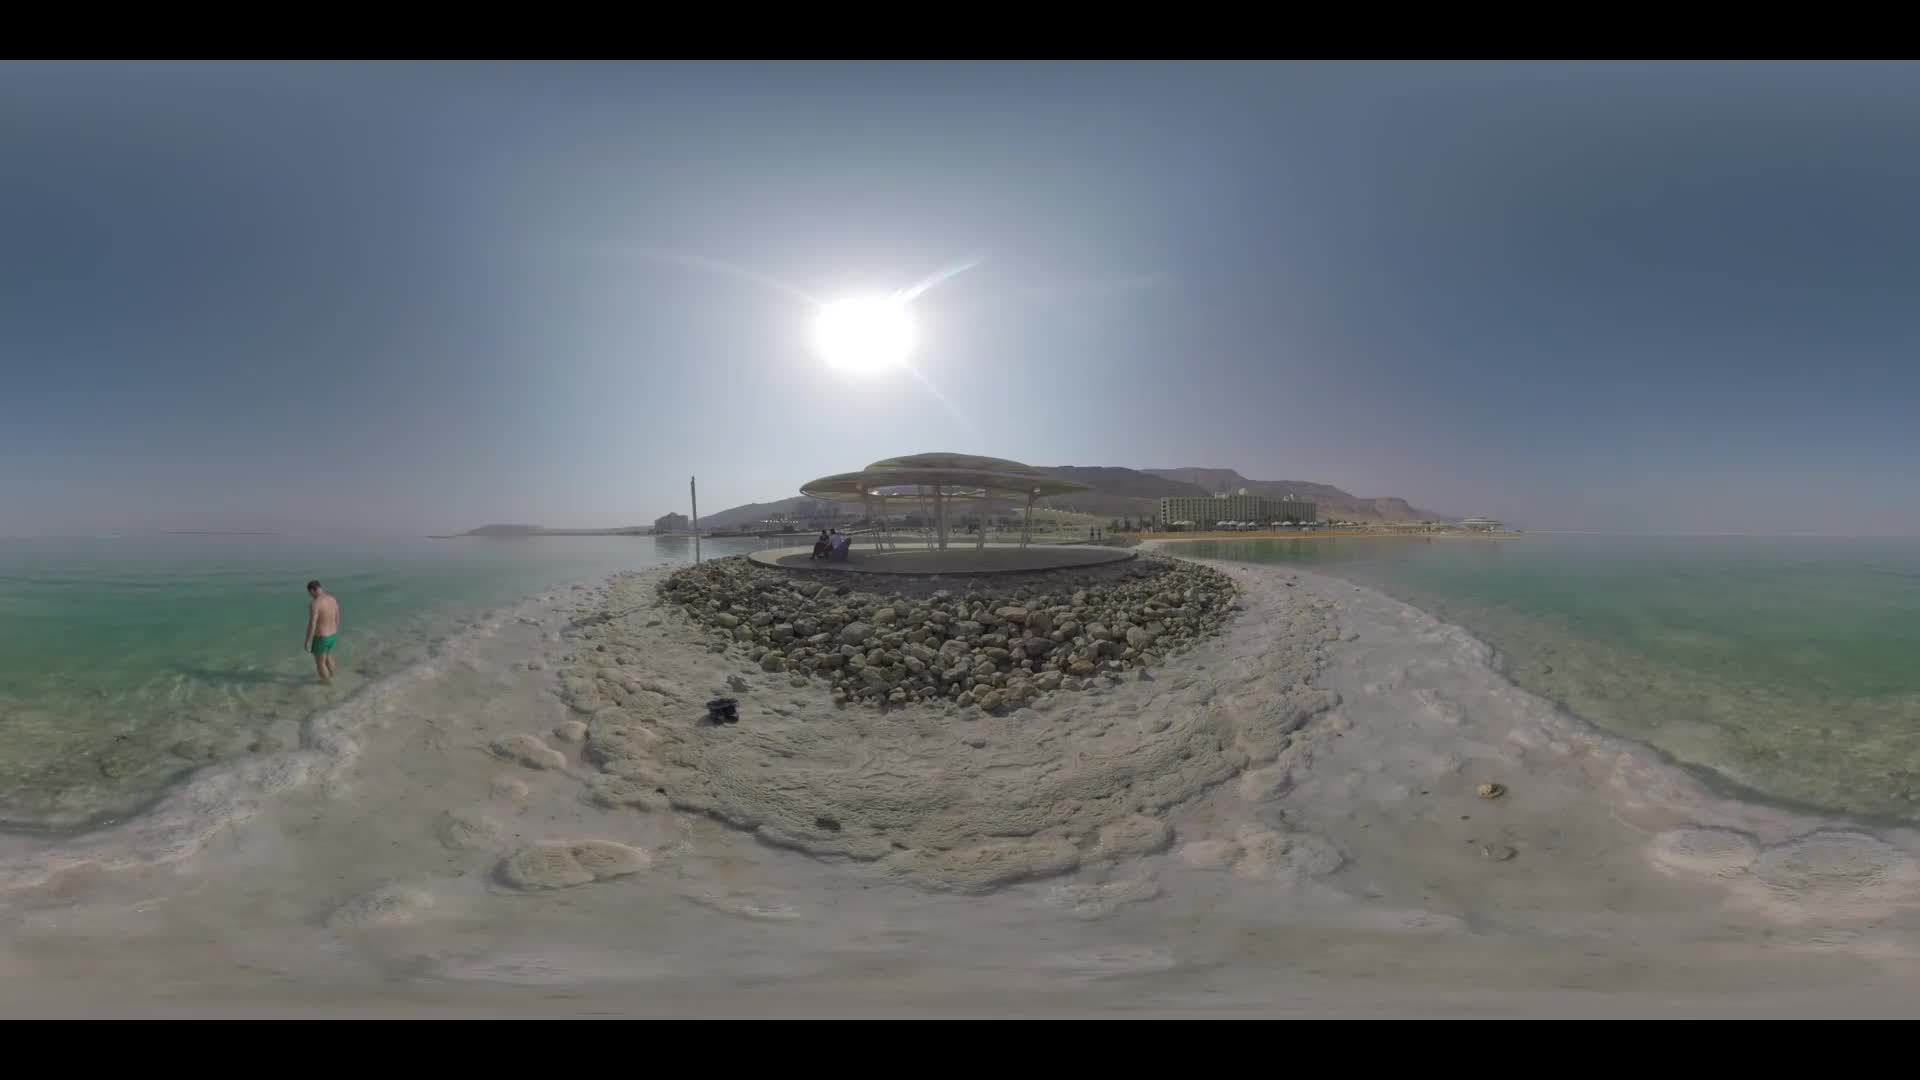 DEAD SEA, ISRAEL - MARCH 11, 2017: 360 VR video. Resort on the shore of Dead Sea. Man (with model release) bathing in pure salt water and some vacationers relaxing on the shaded deck nearby